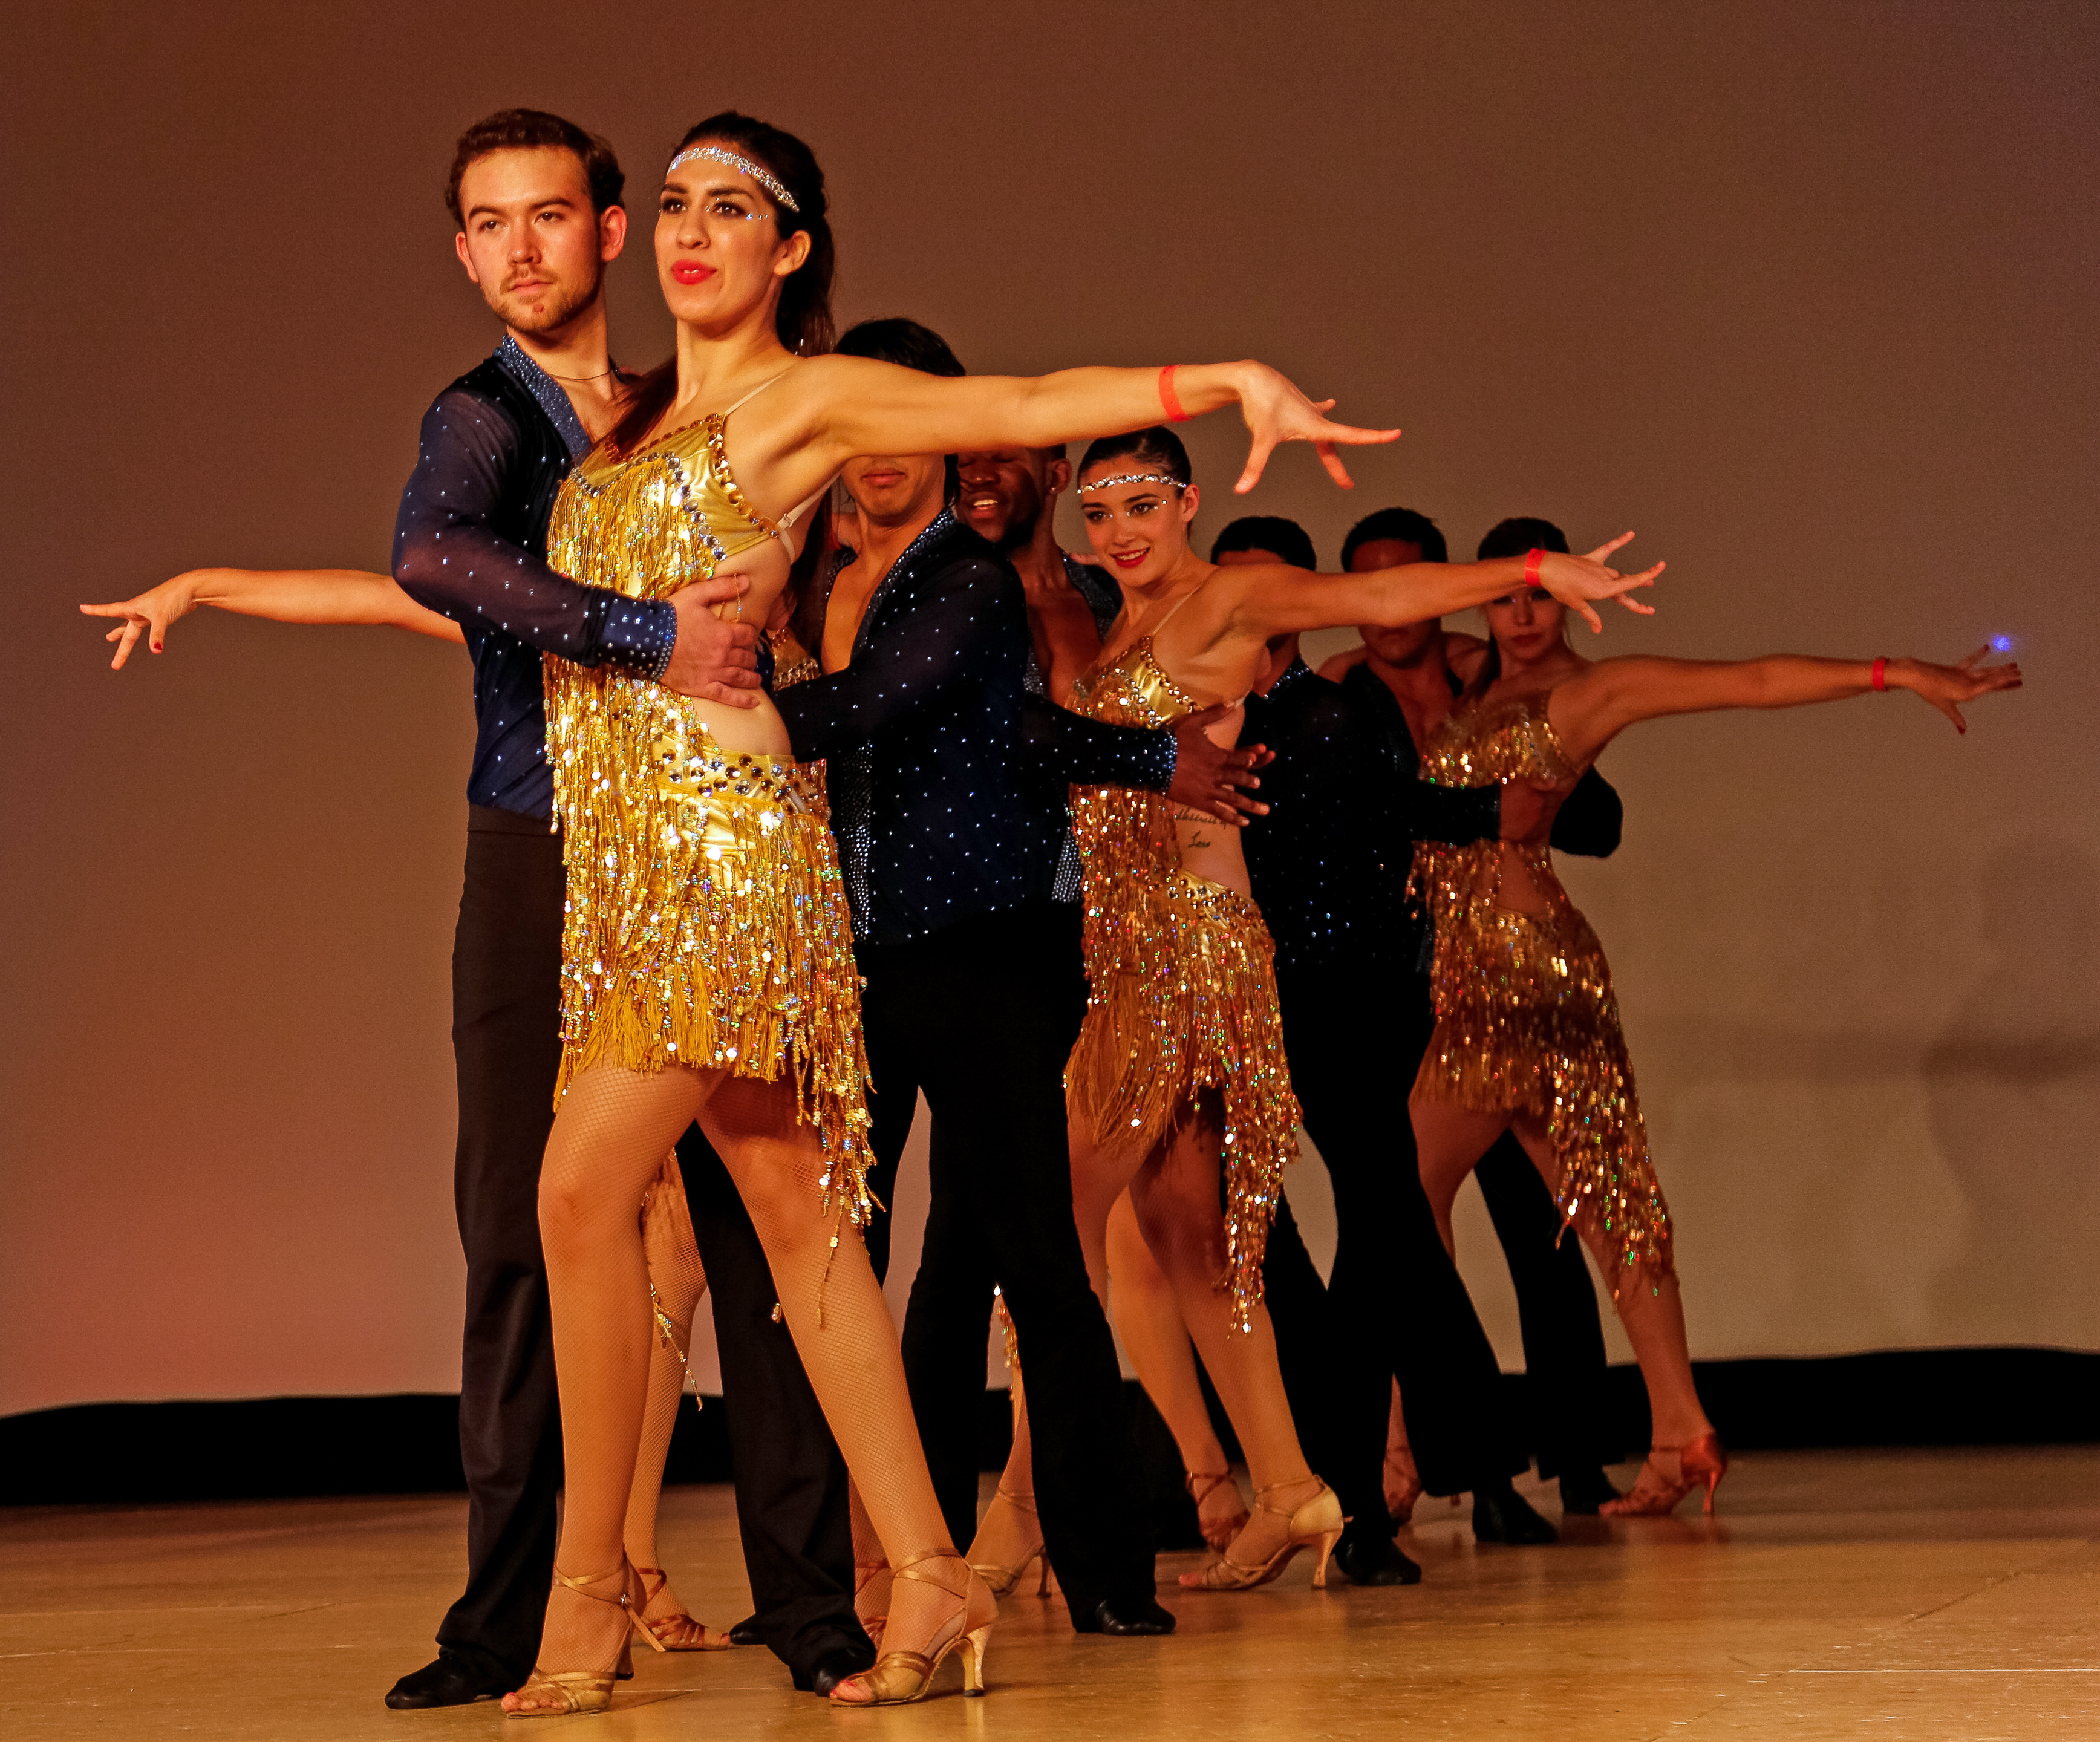 Here are some great photos from the World Latin Dance Cup captured by ...